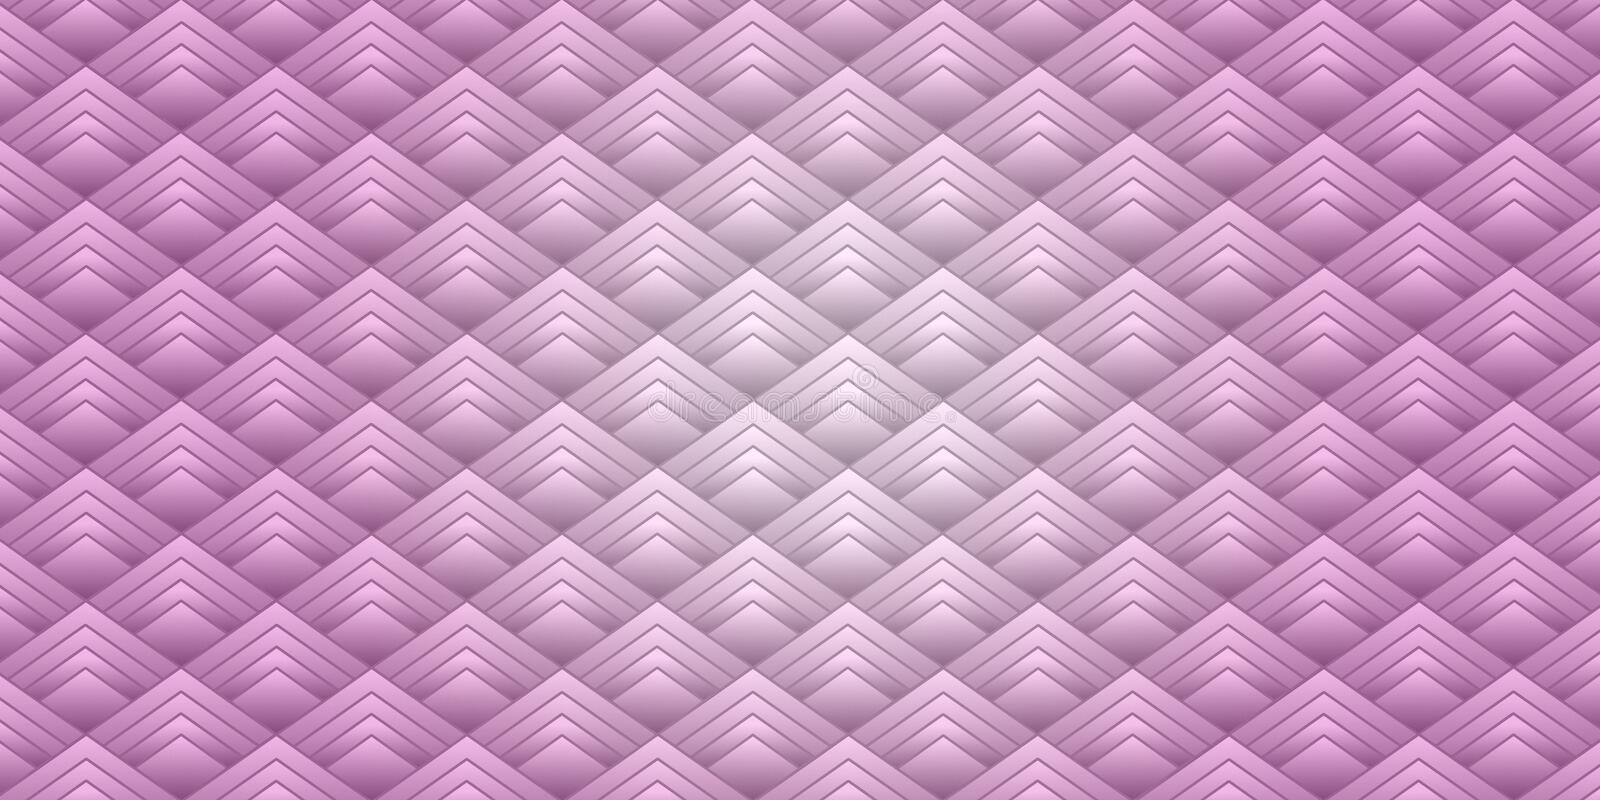 Elegant purple diamond squares geometric abstract wallpaper background illustration design. royalty free illustration